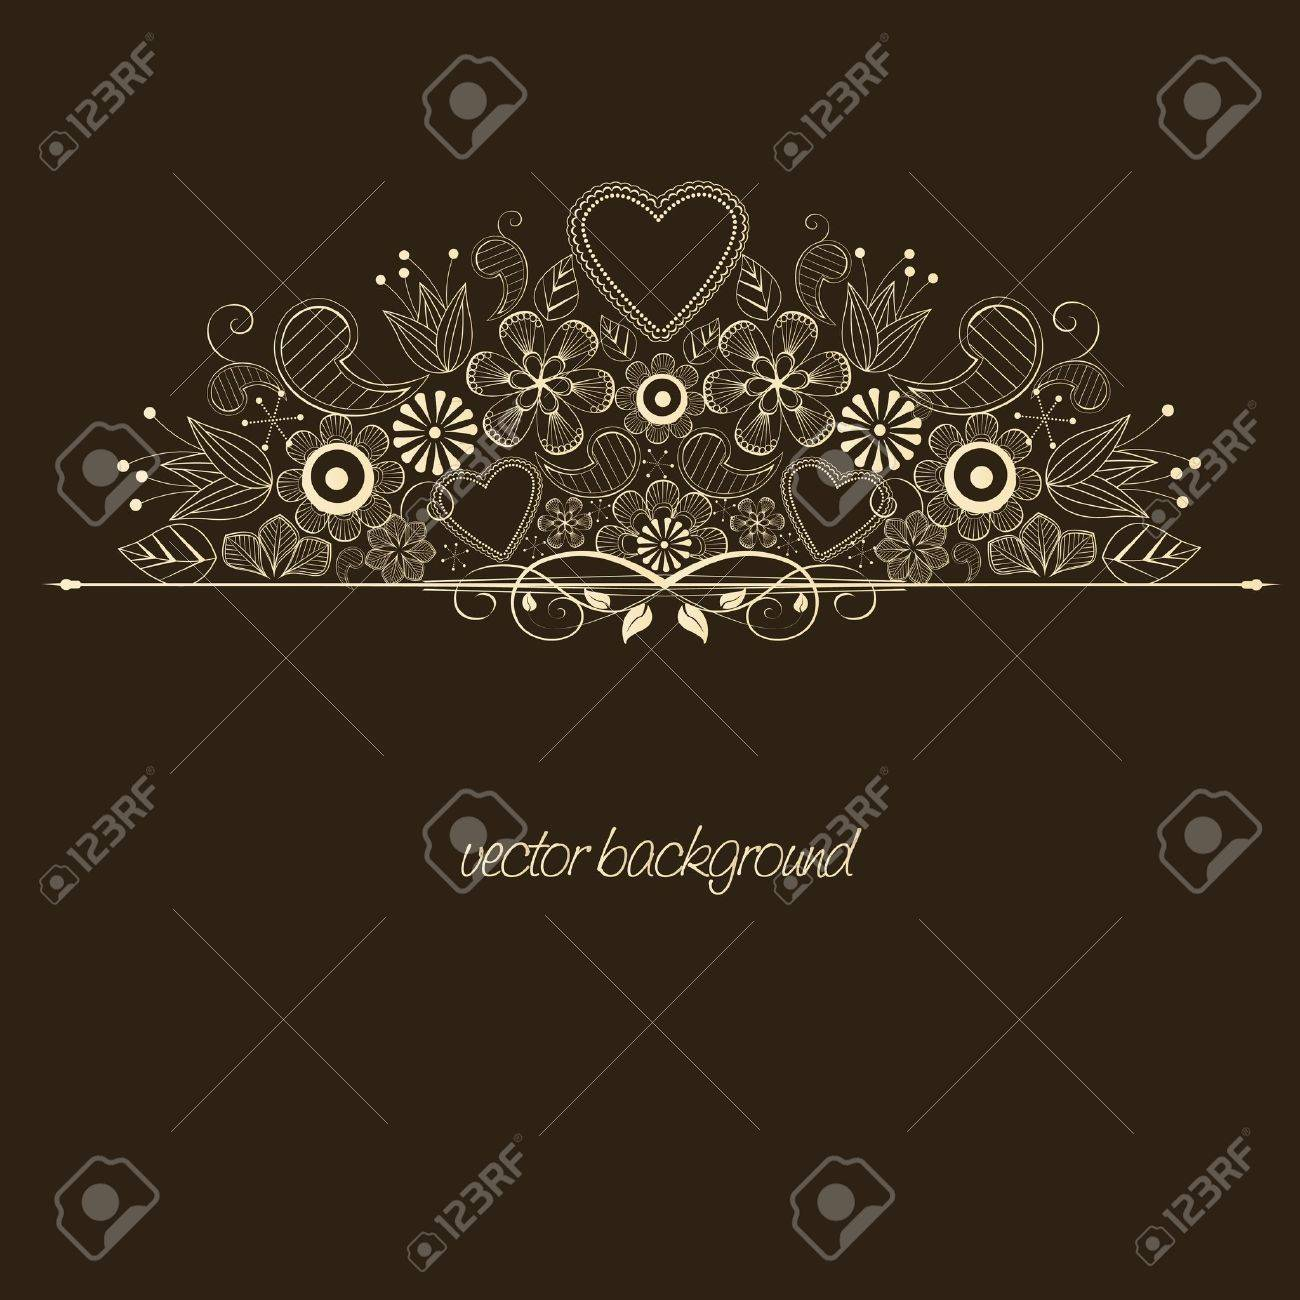 decoration with flowers on brown background Stock Vector - 13086640